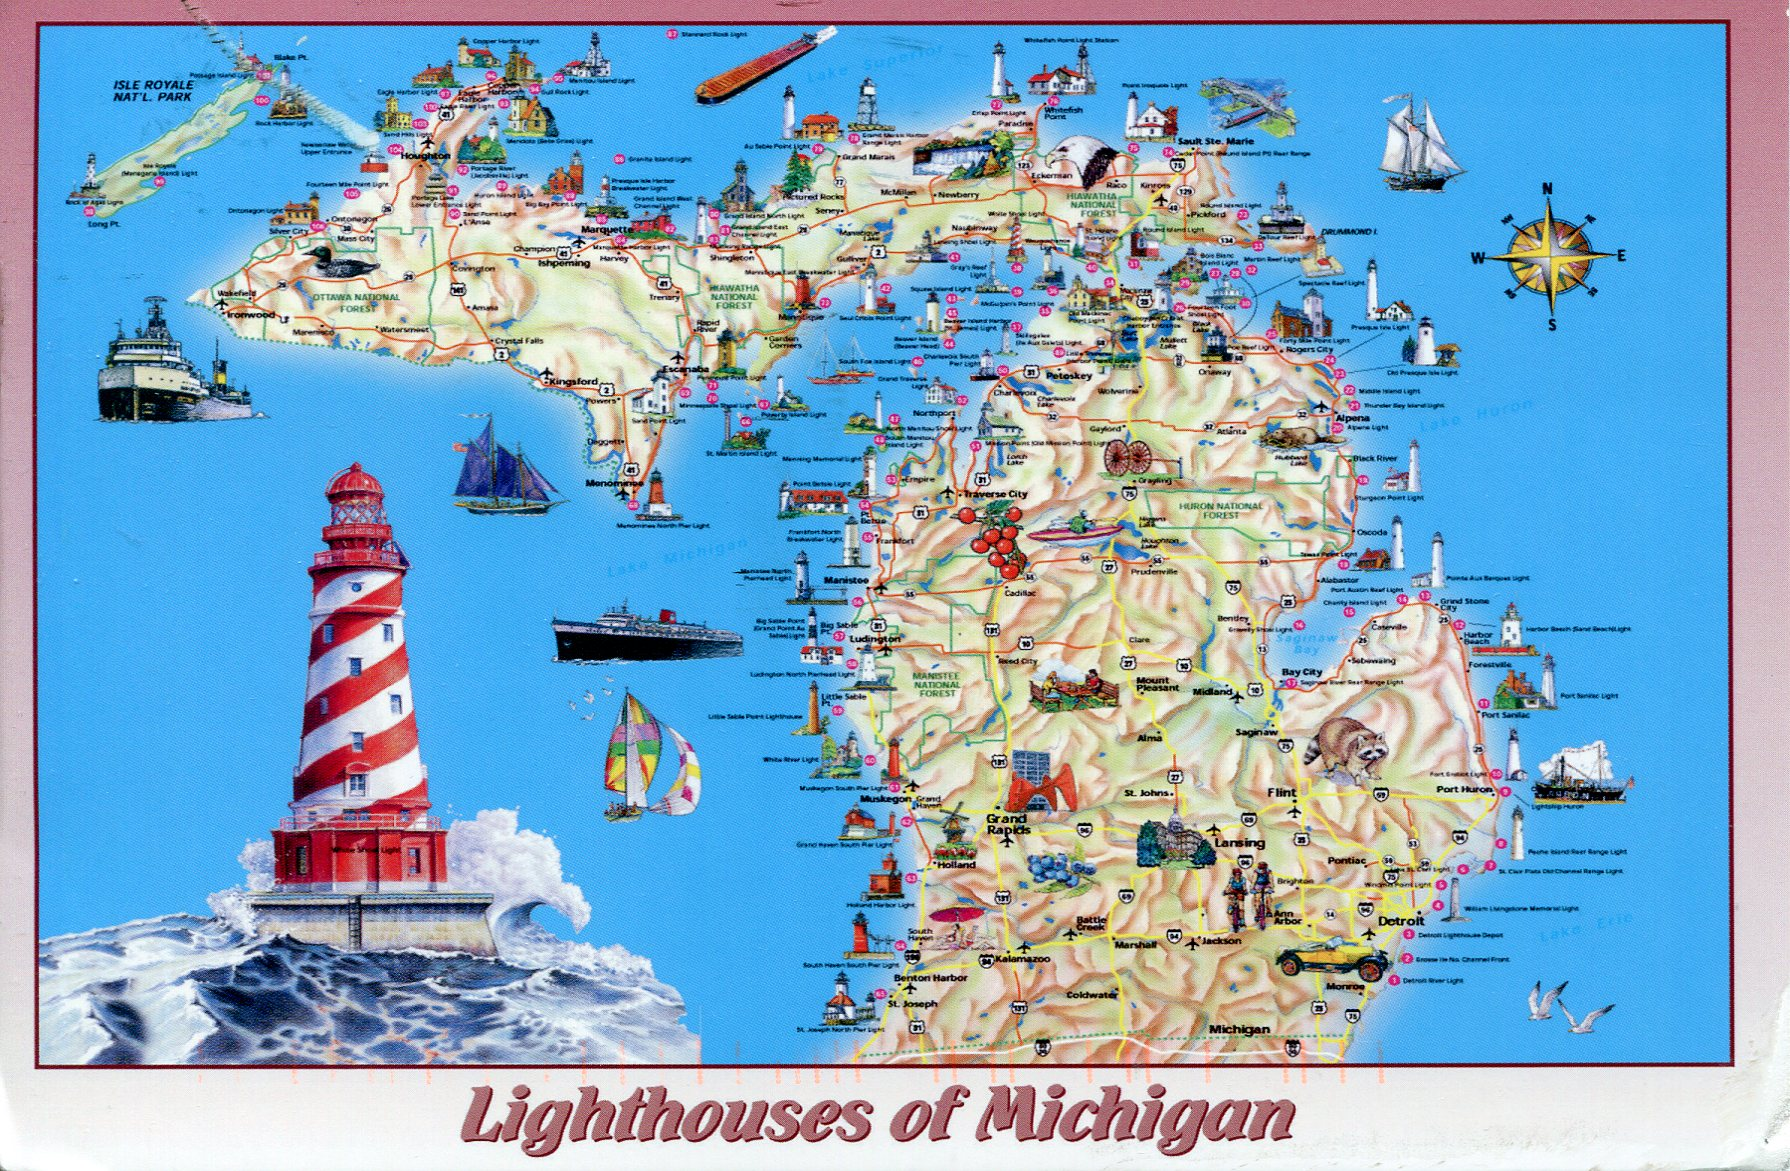 PICS Of MICHIGAN39S LIGHTHOUSES Manistique 2013 Getaway